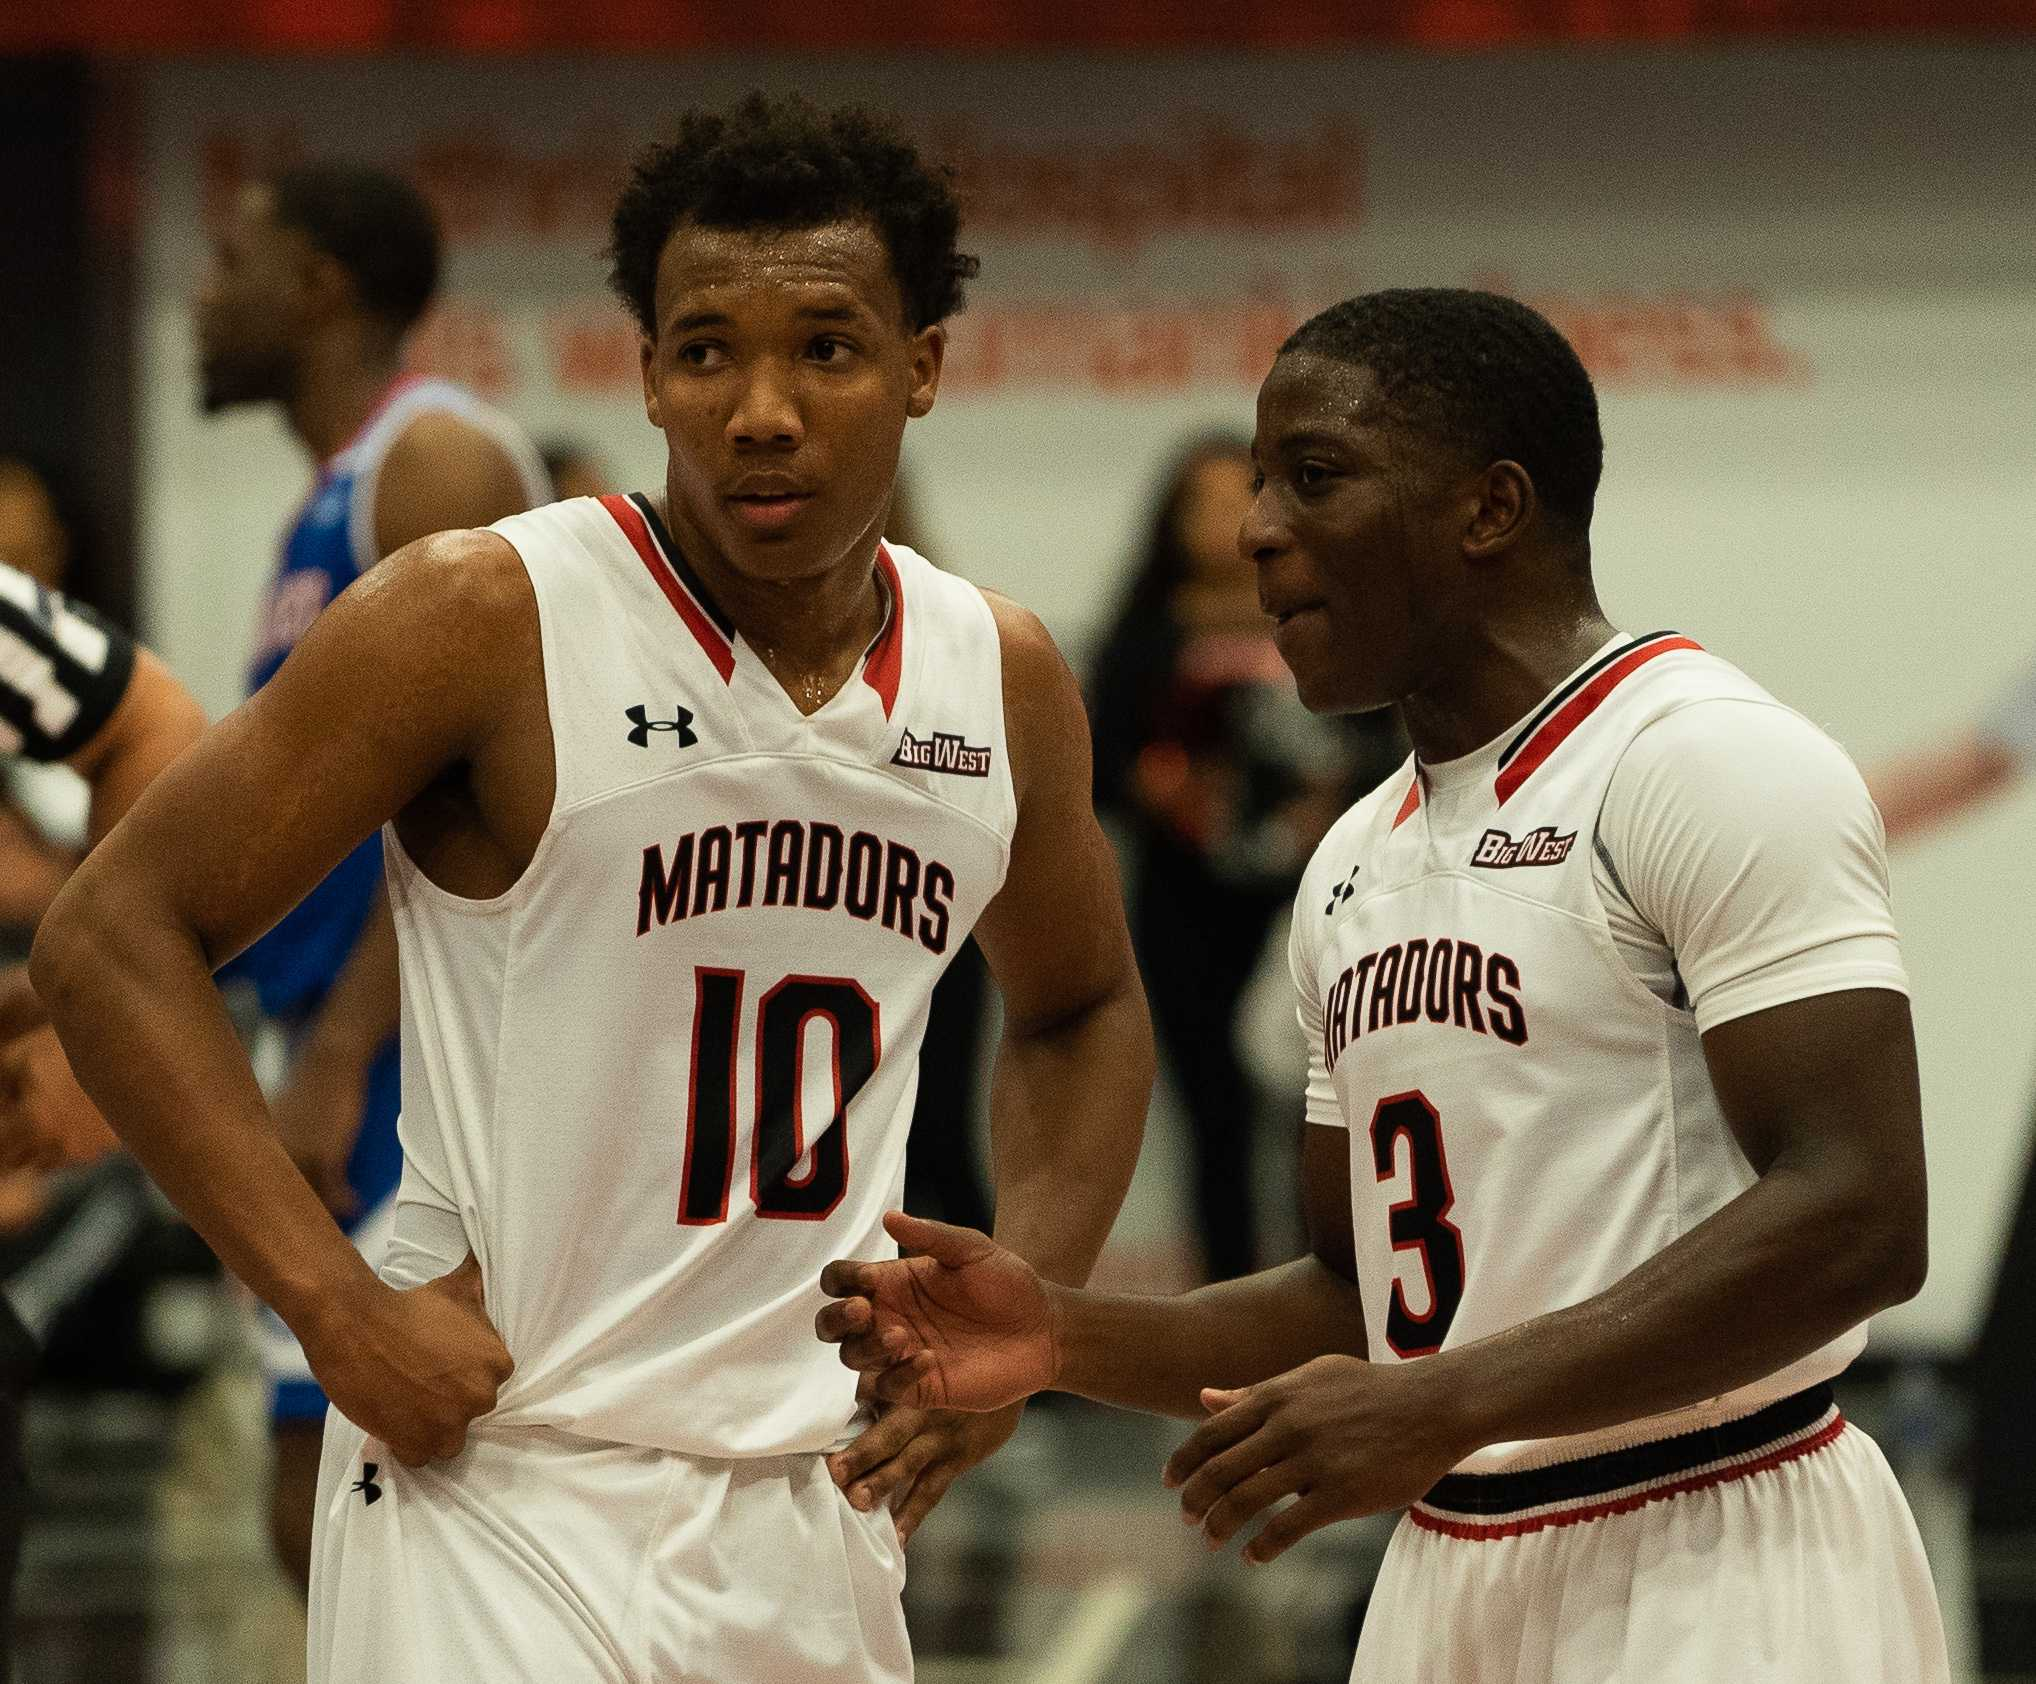 Two CSUN Men's basketball players communicating with each other in white CSUN jerseys